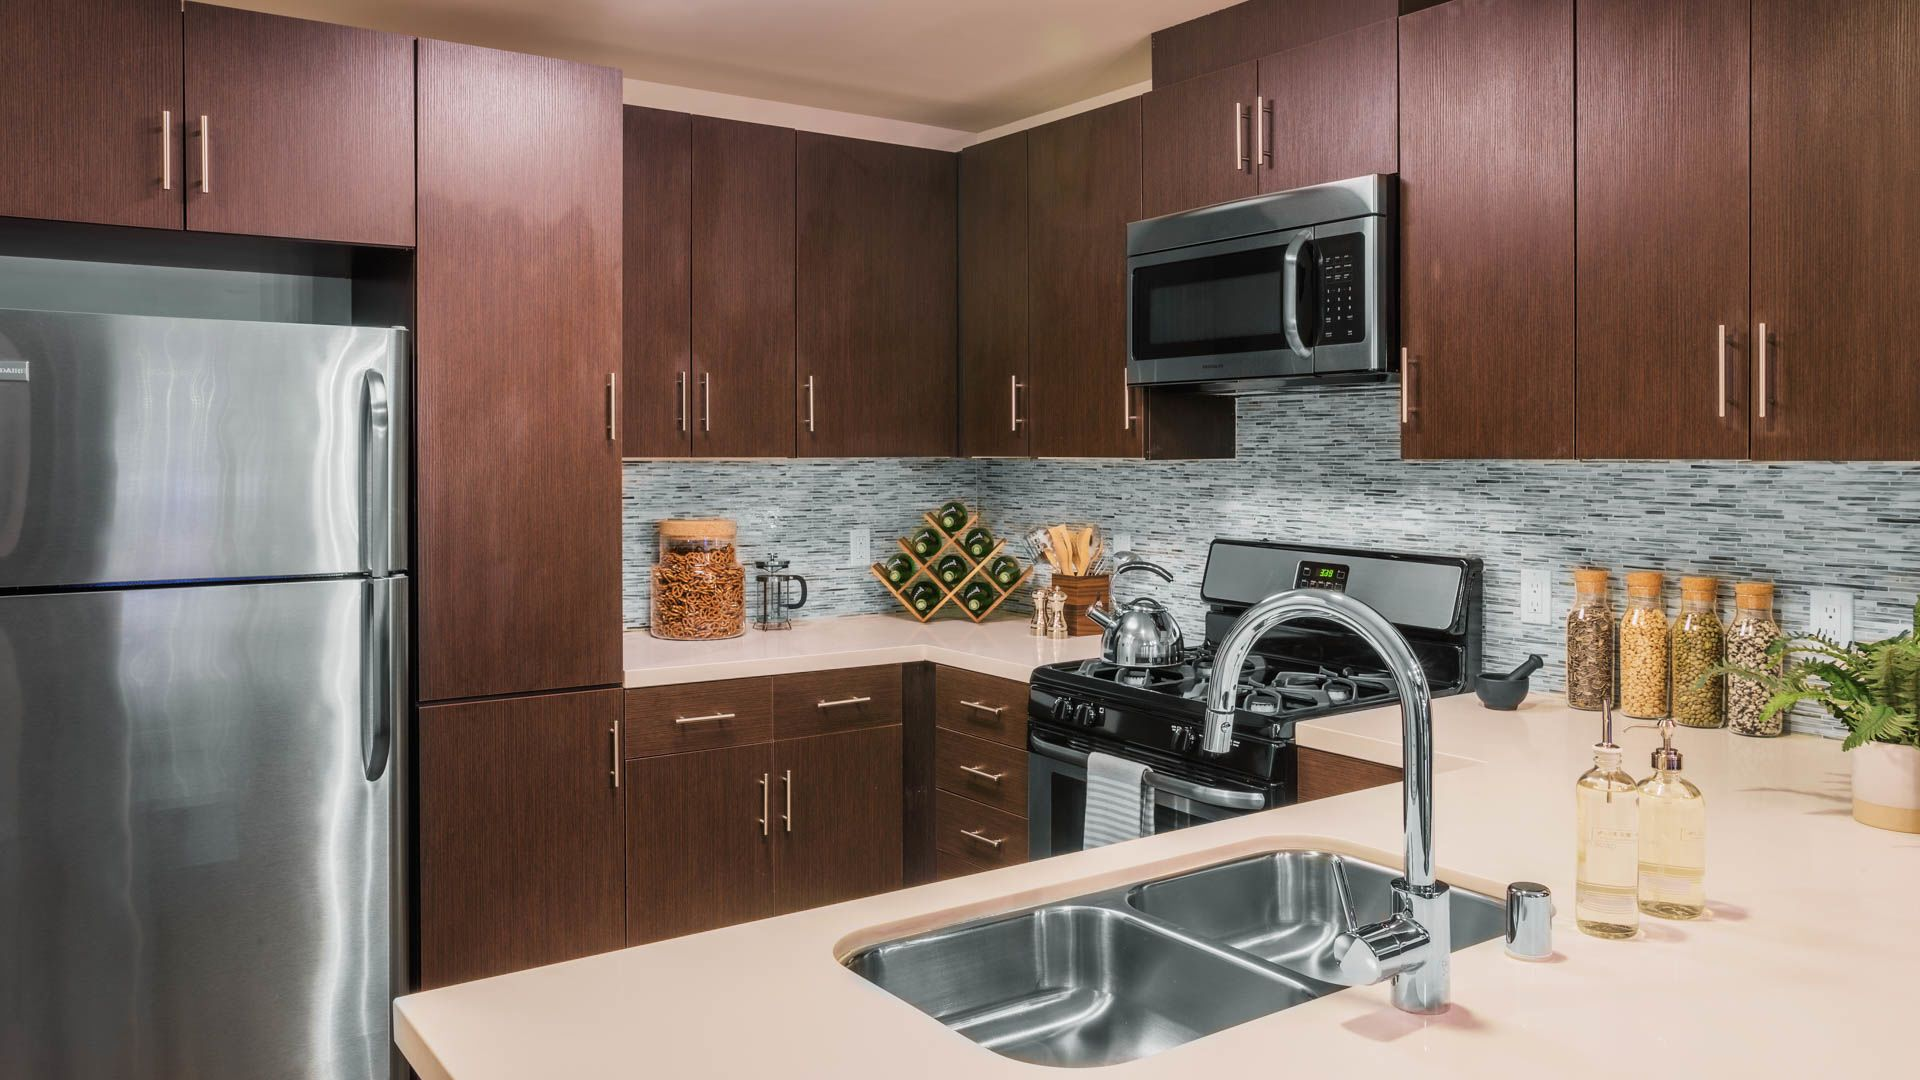 Radius Koreatown Apartments - Kitchen